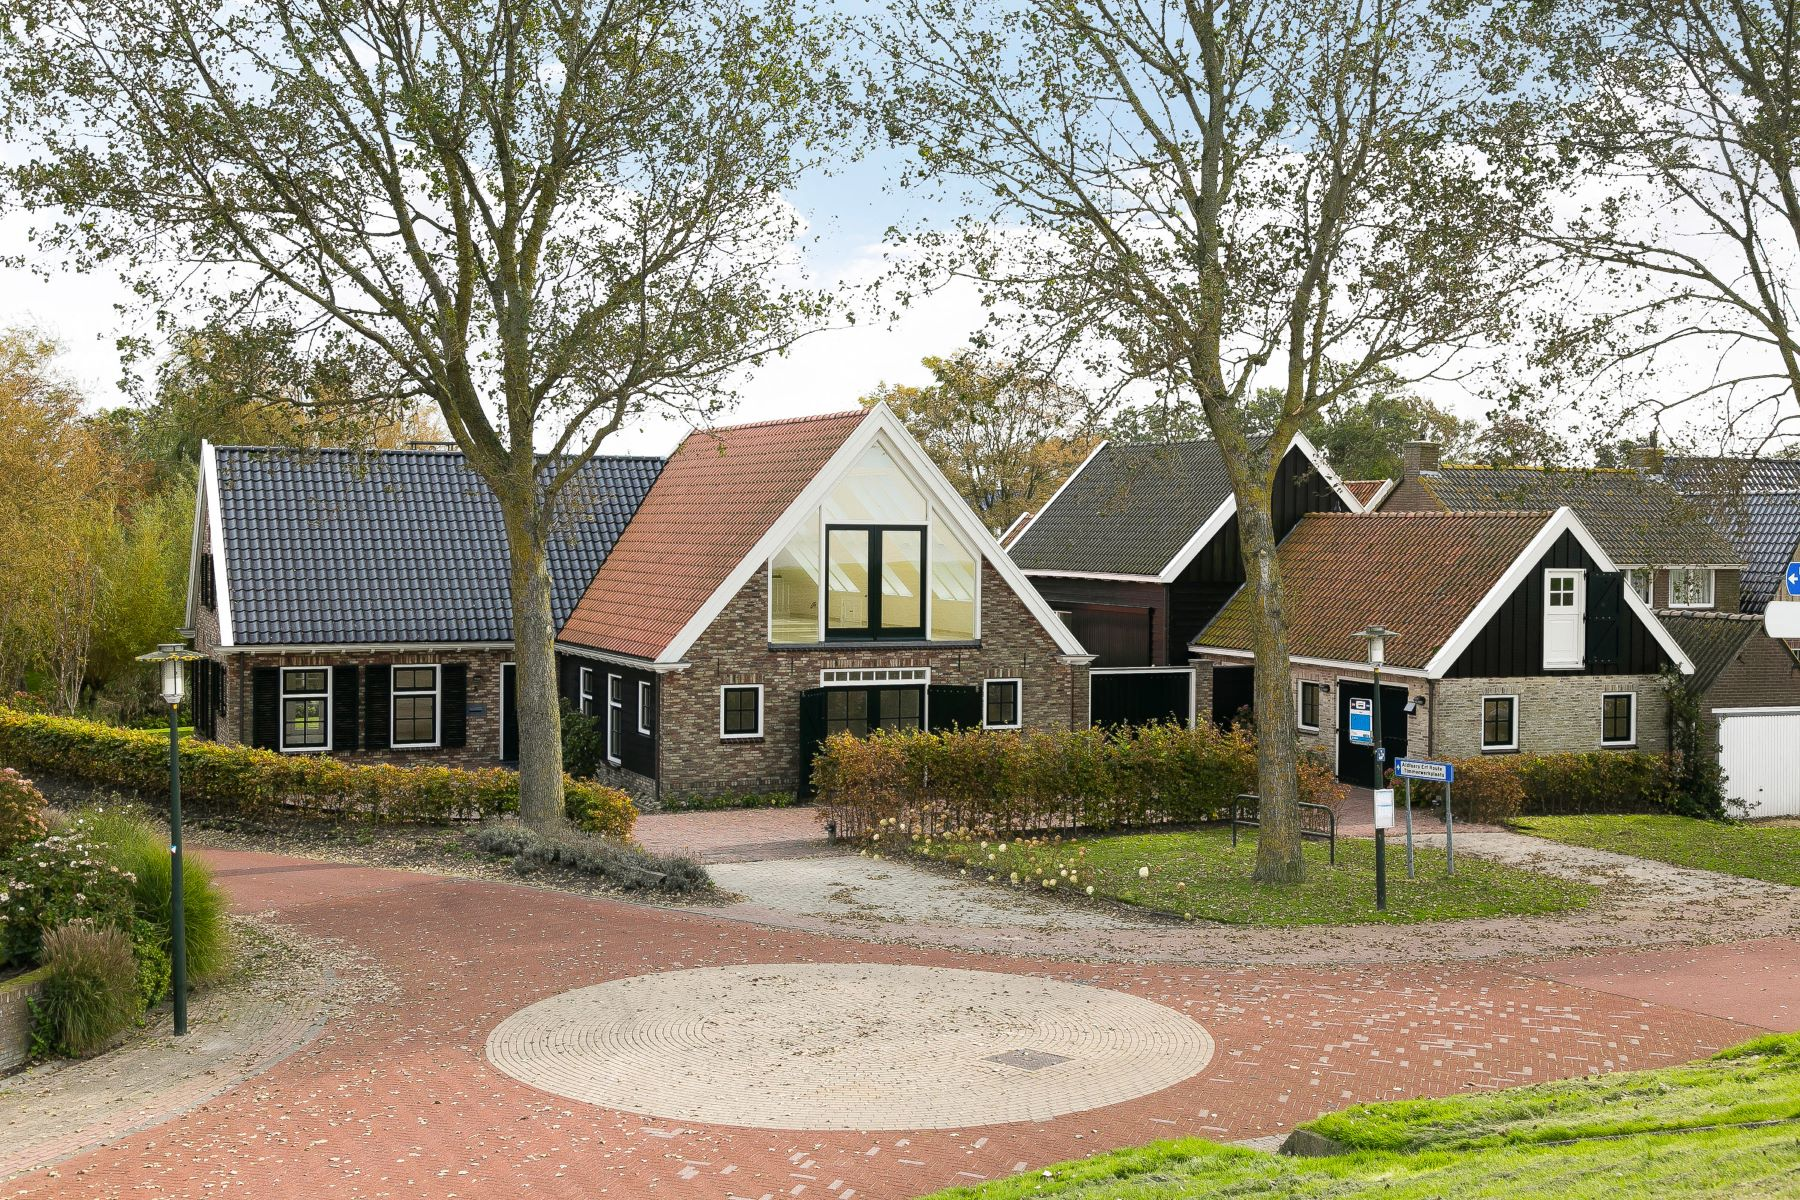 Single Family Homes for Sale at Newly built villa with studio Zeedijk 3 Gaast, Friesland 8757 JV Netherlands